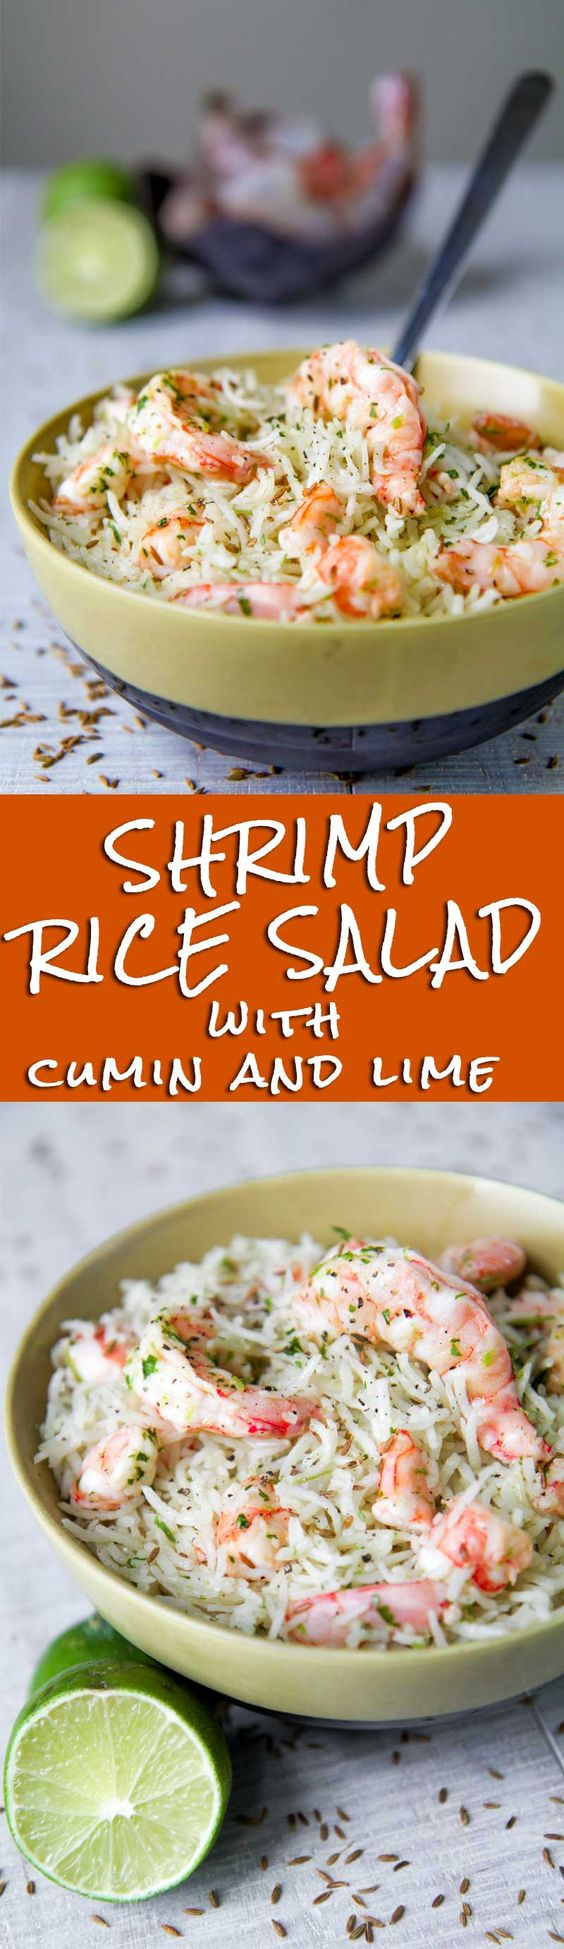 SHRIMP RICE SALAD with lime and cumin dressing - Shrimp rice salad is ...